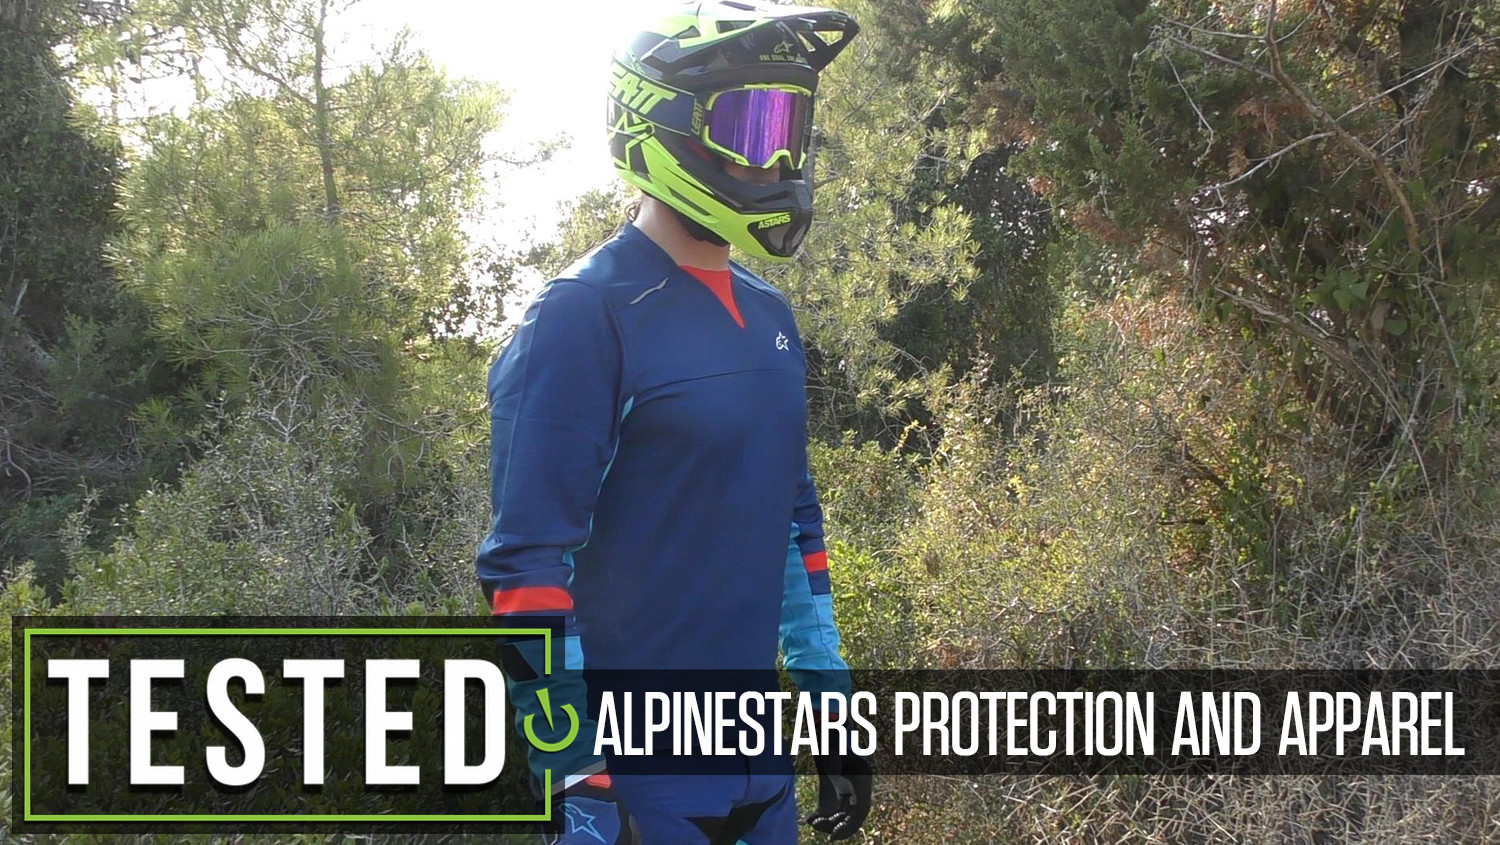 Tested: Alpinestars Protection and Apparel